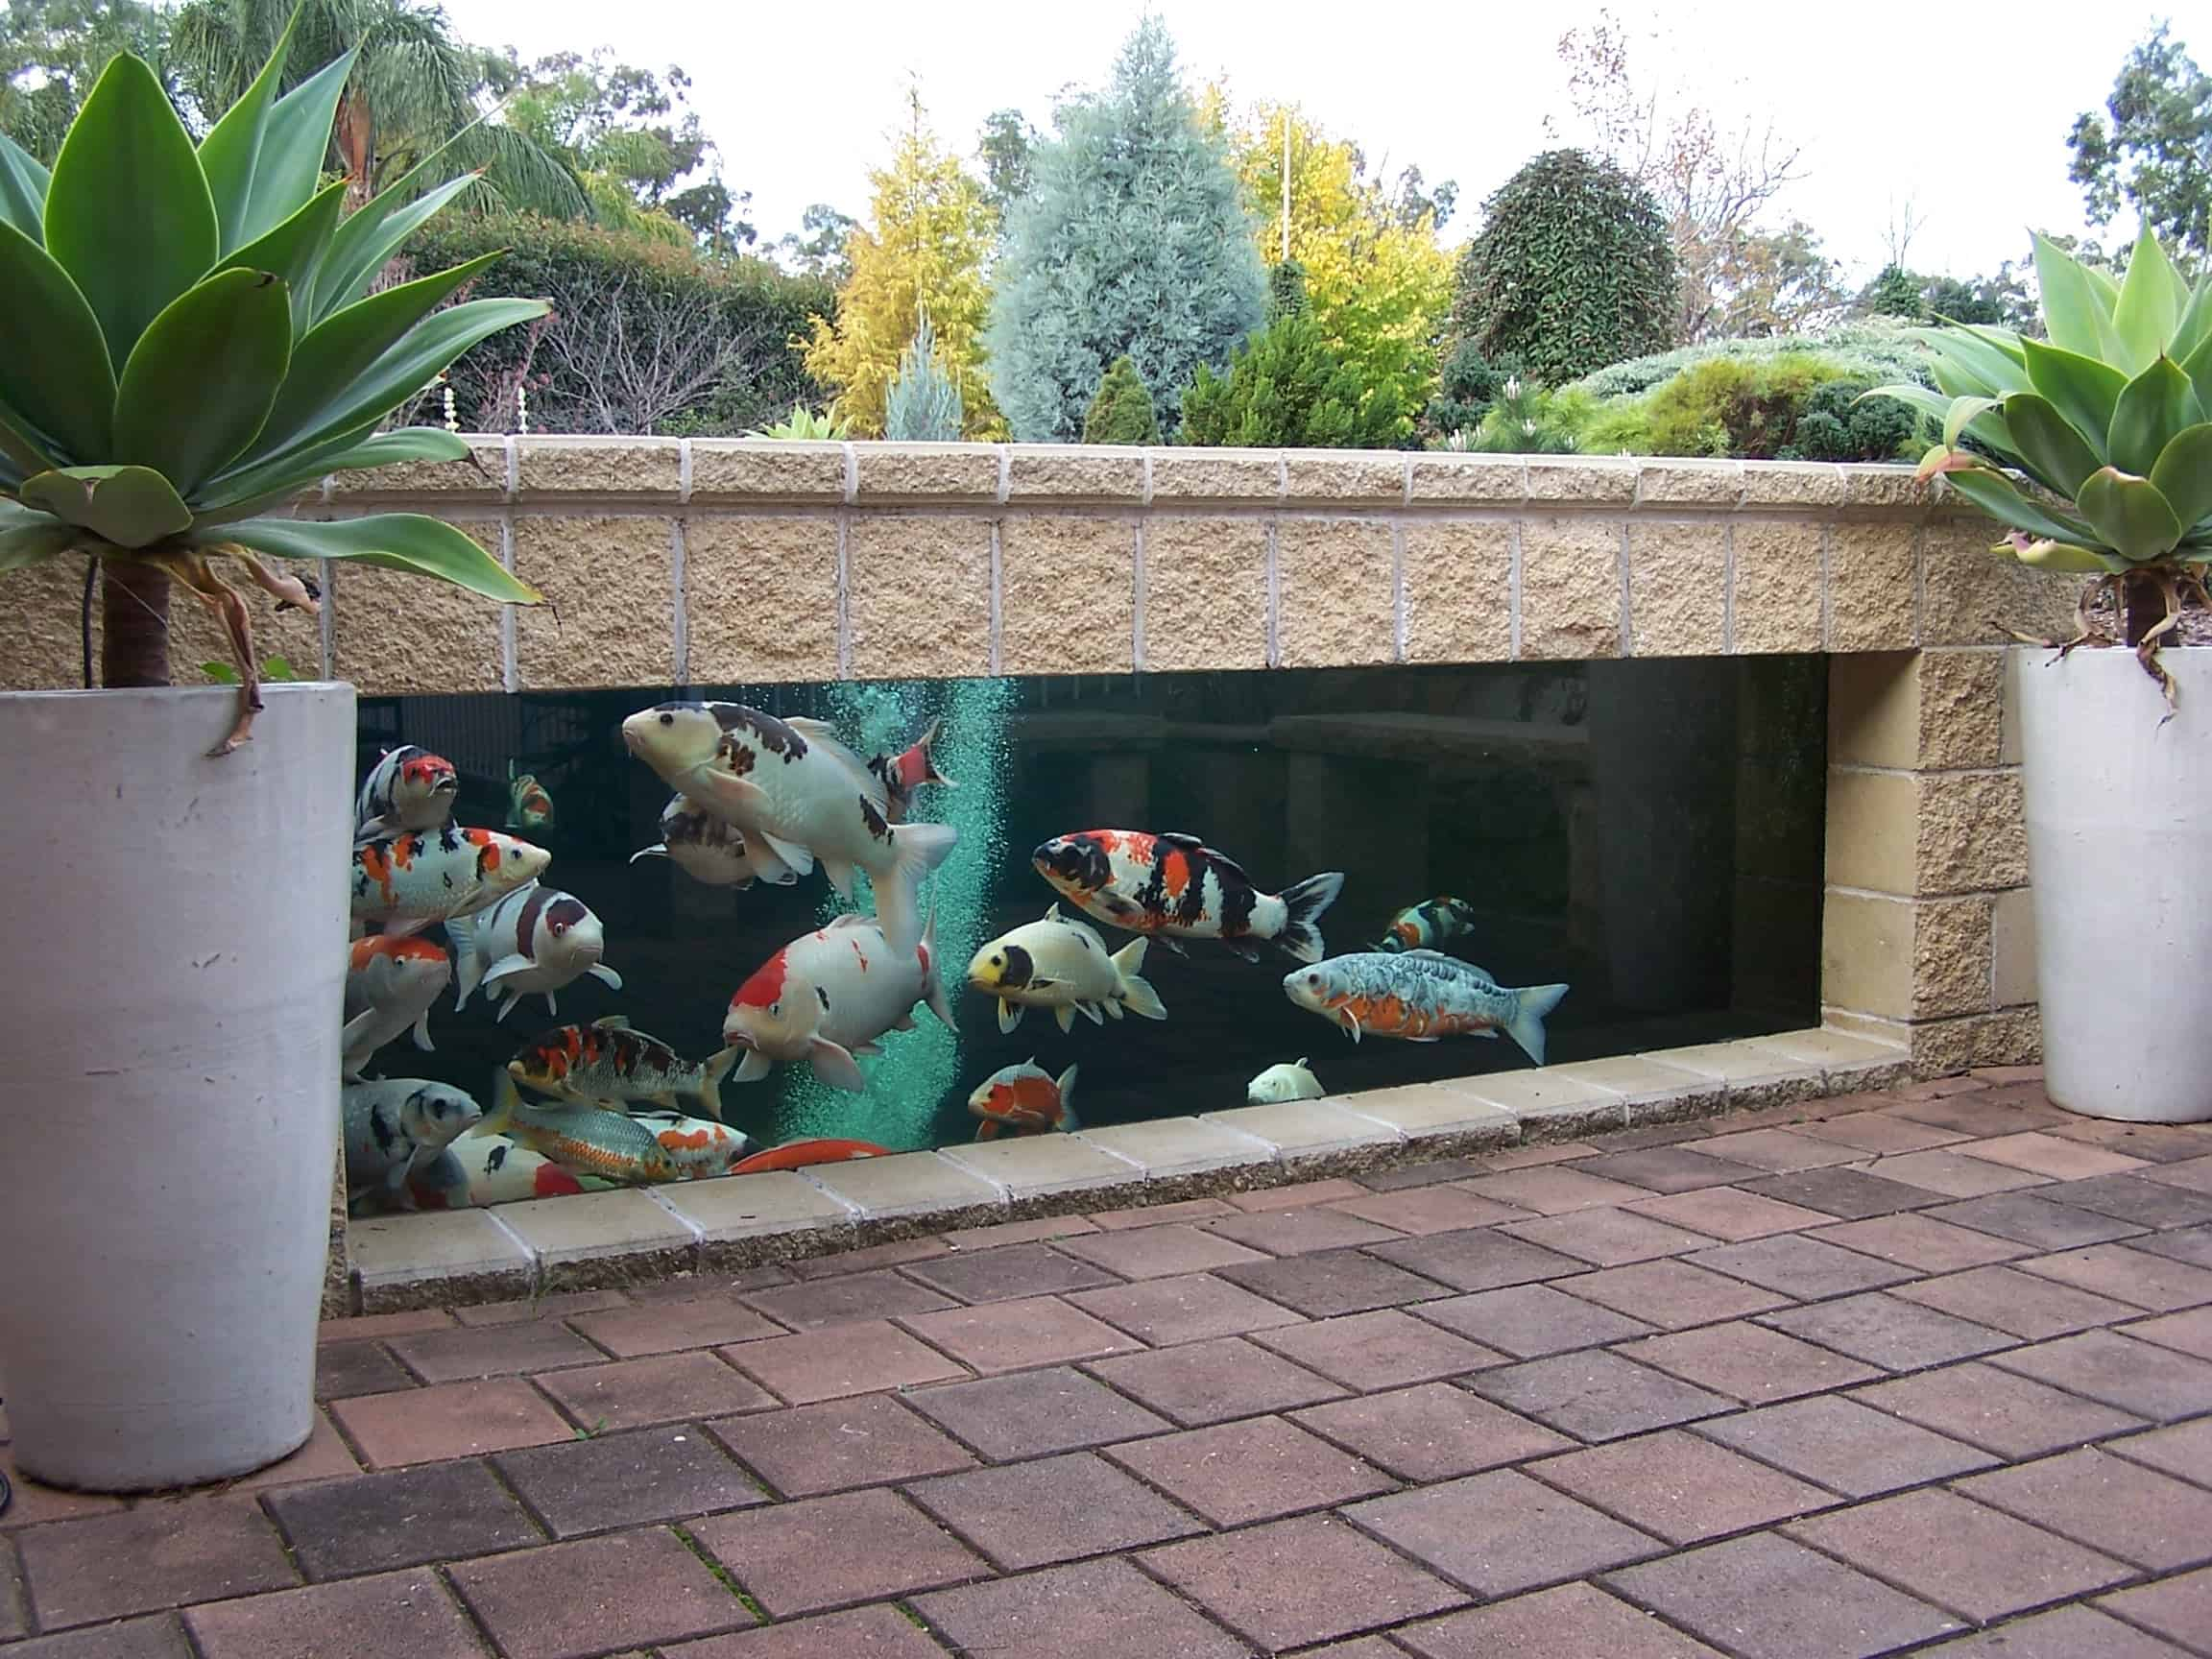 35 Sublime Koi Pond Designs and Water Garden Ideas for ... on Koi Ponds Ideas  id=50137